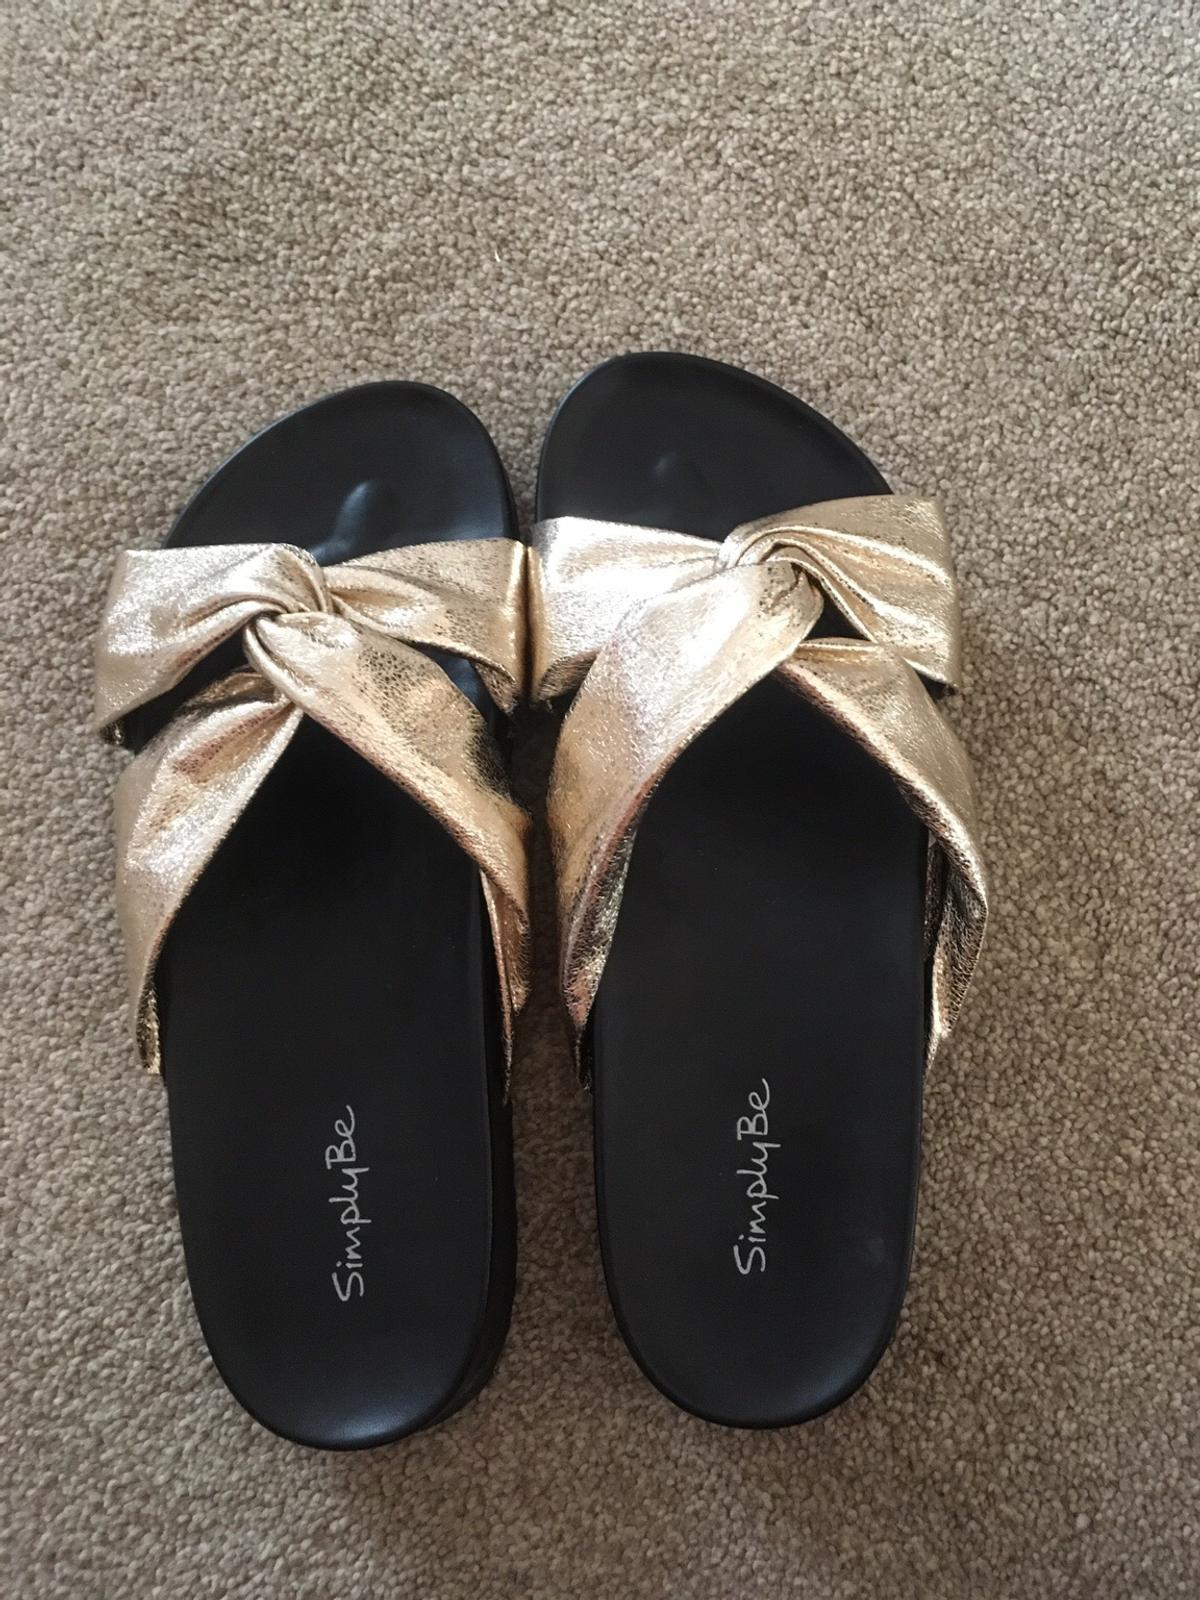 f58732c17 BRAND NEW SLIDERS size 8 in S62 Rotherham for £10.00 for sale - Shpock